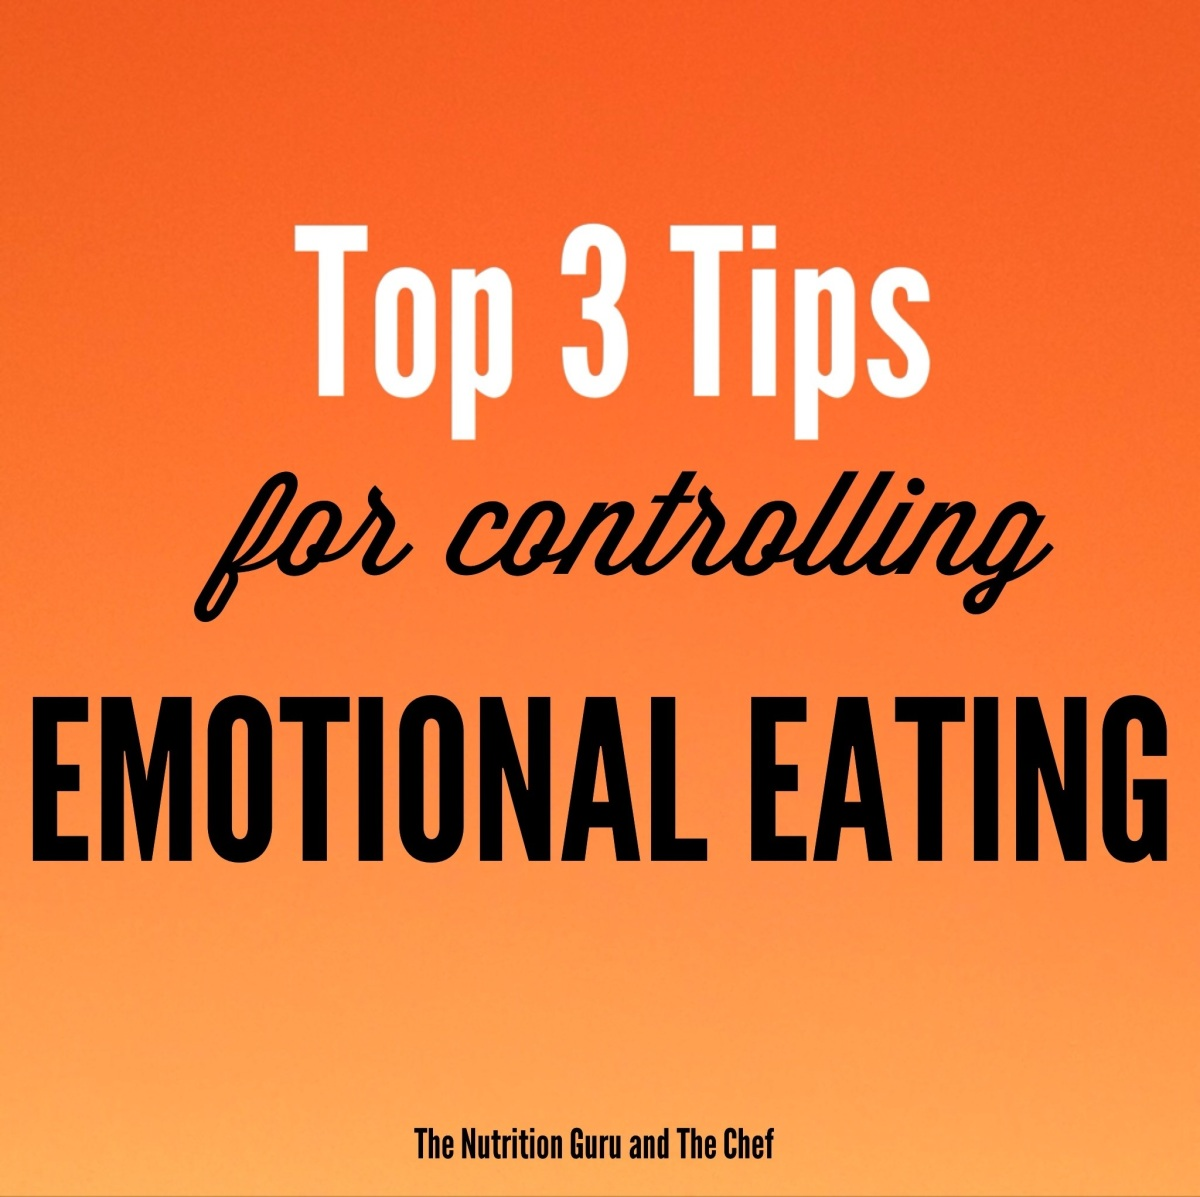 Top 3 Tips for Controlling Emotional Eating